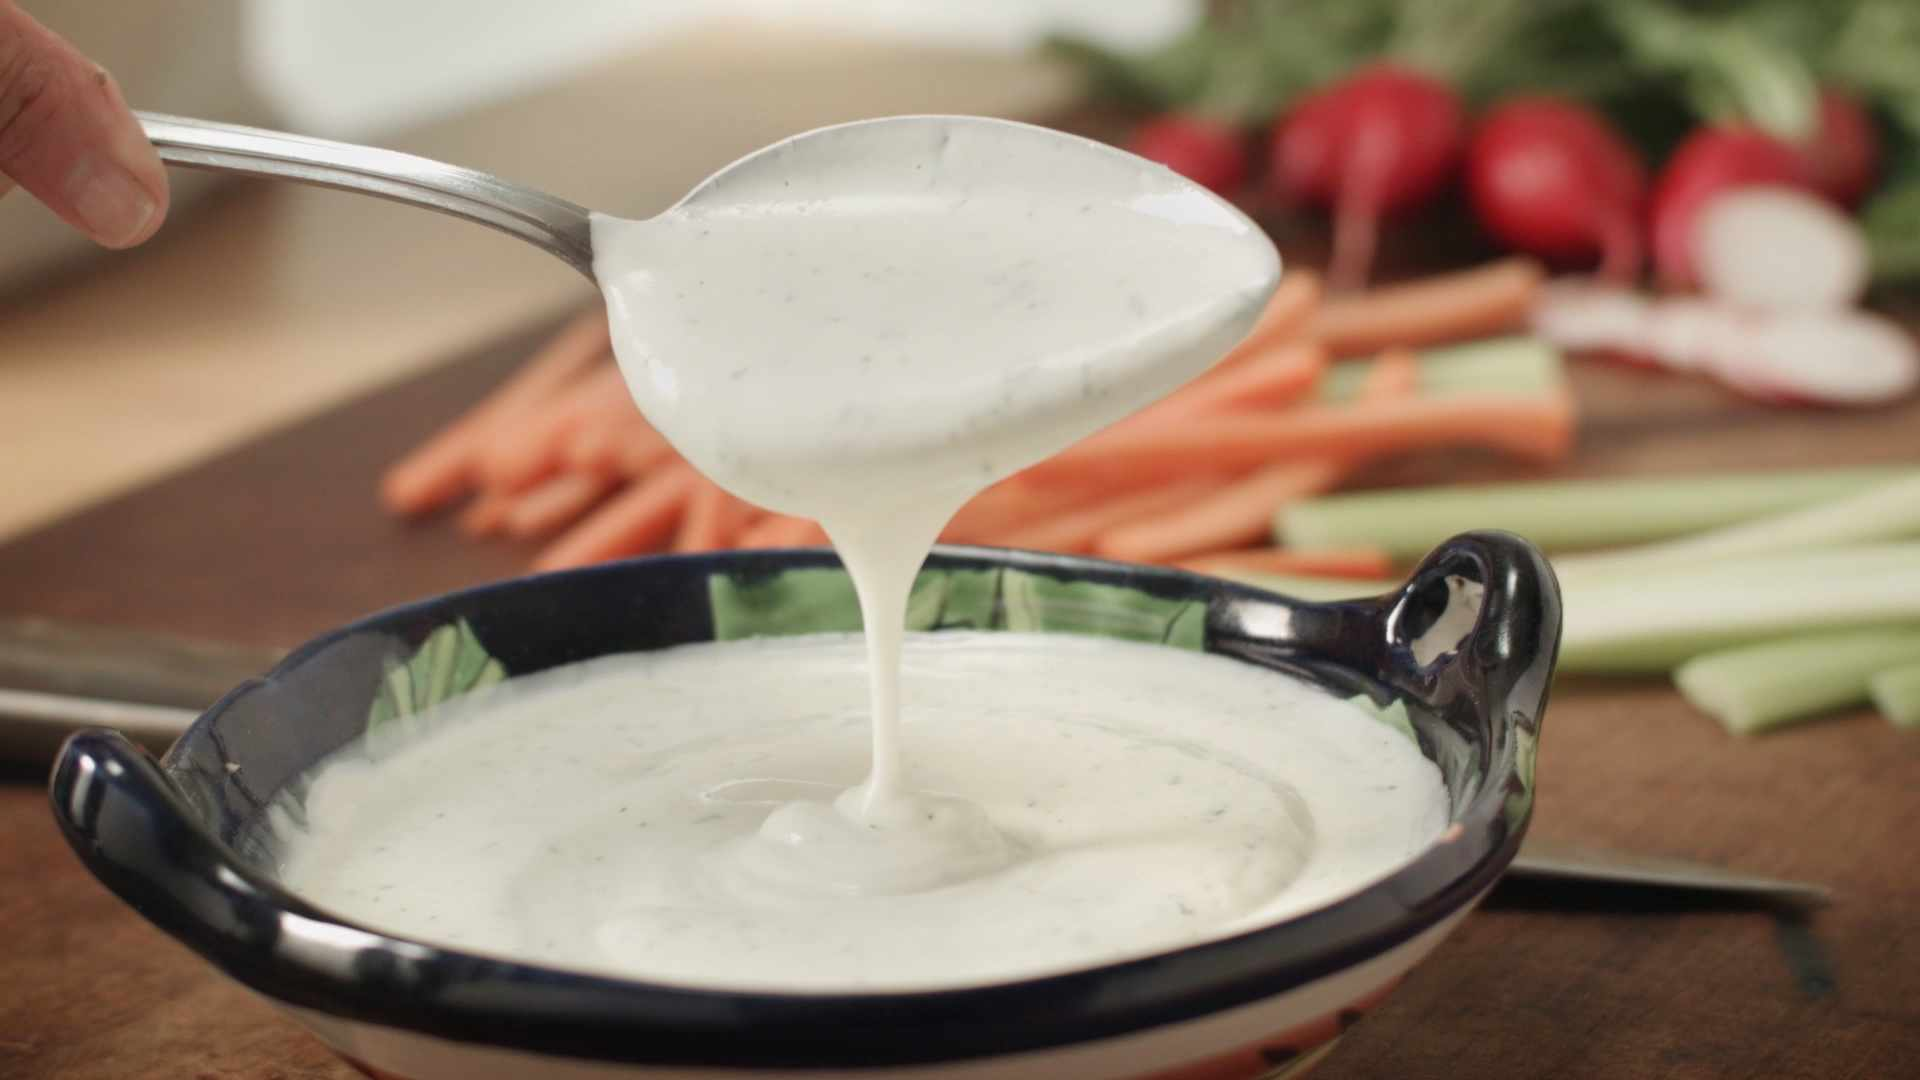 making-mayo-recipes-house-ranch-dressing-16-x-9